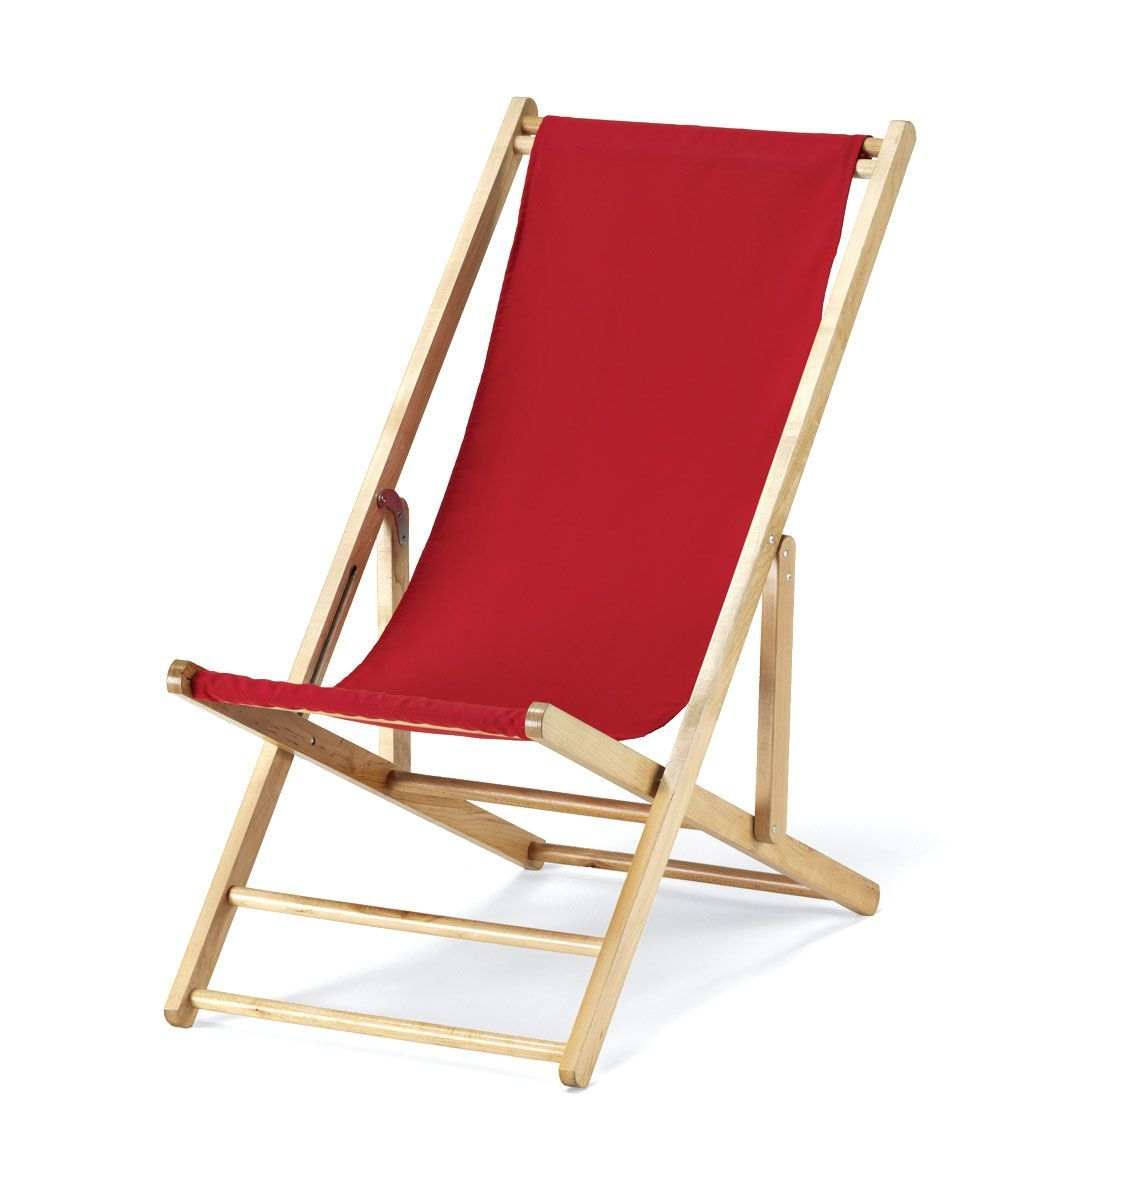 20 canvas chairs outdoor furniture interior paint color schemes rh pinterest com Best Outdoor Folding Chair Canvas Directors Chairs for Replacement Pieces